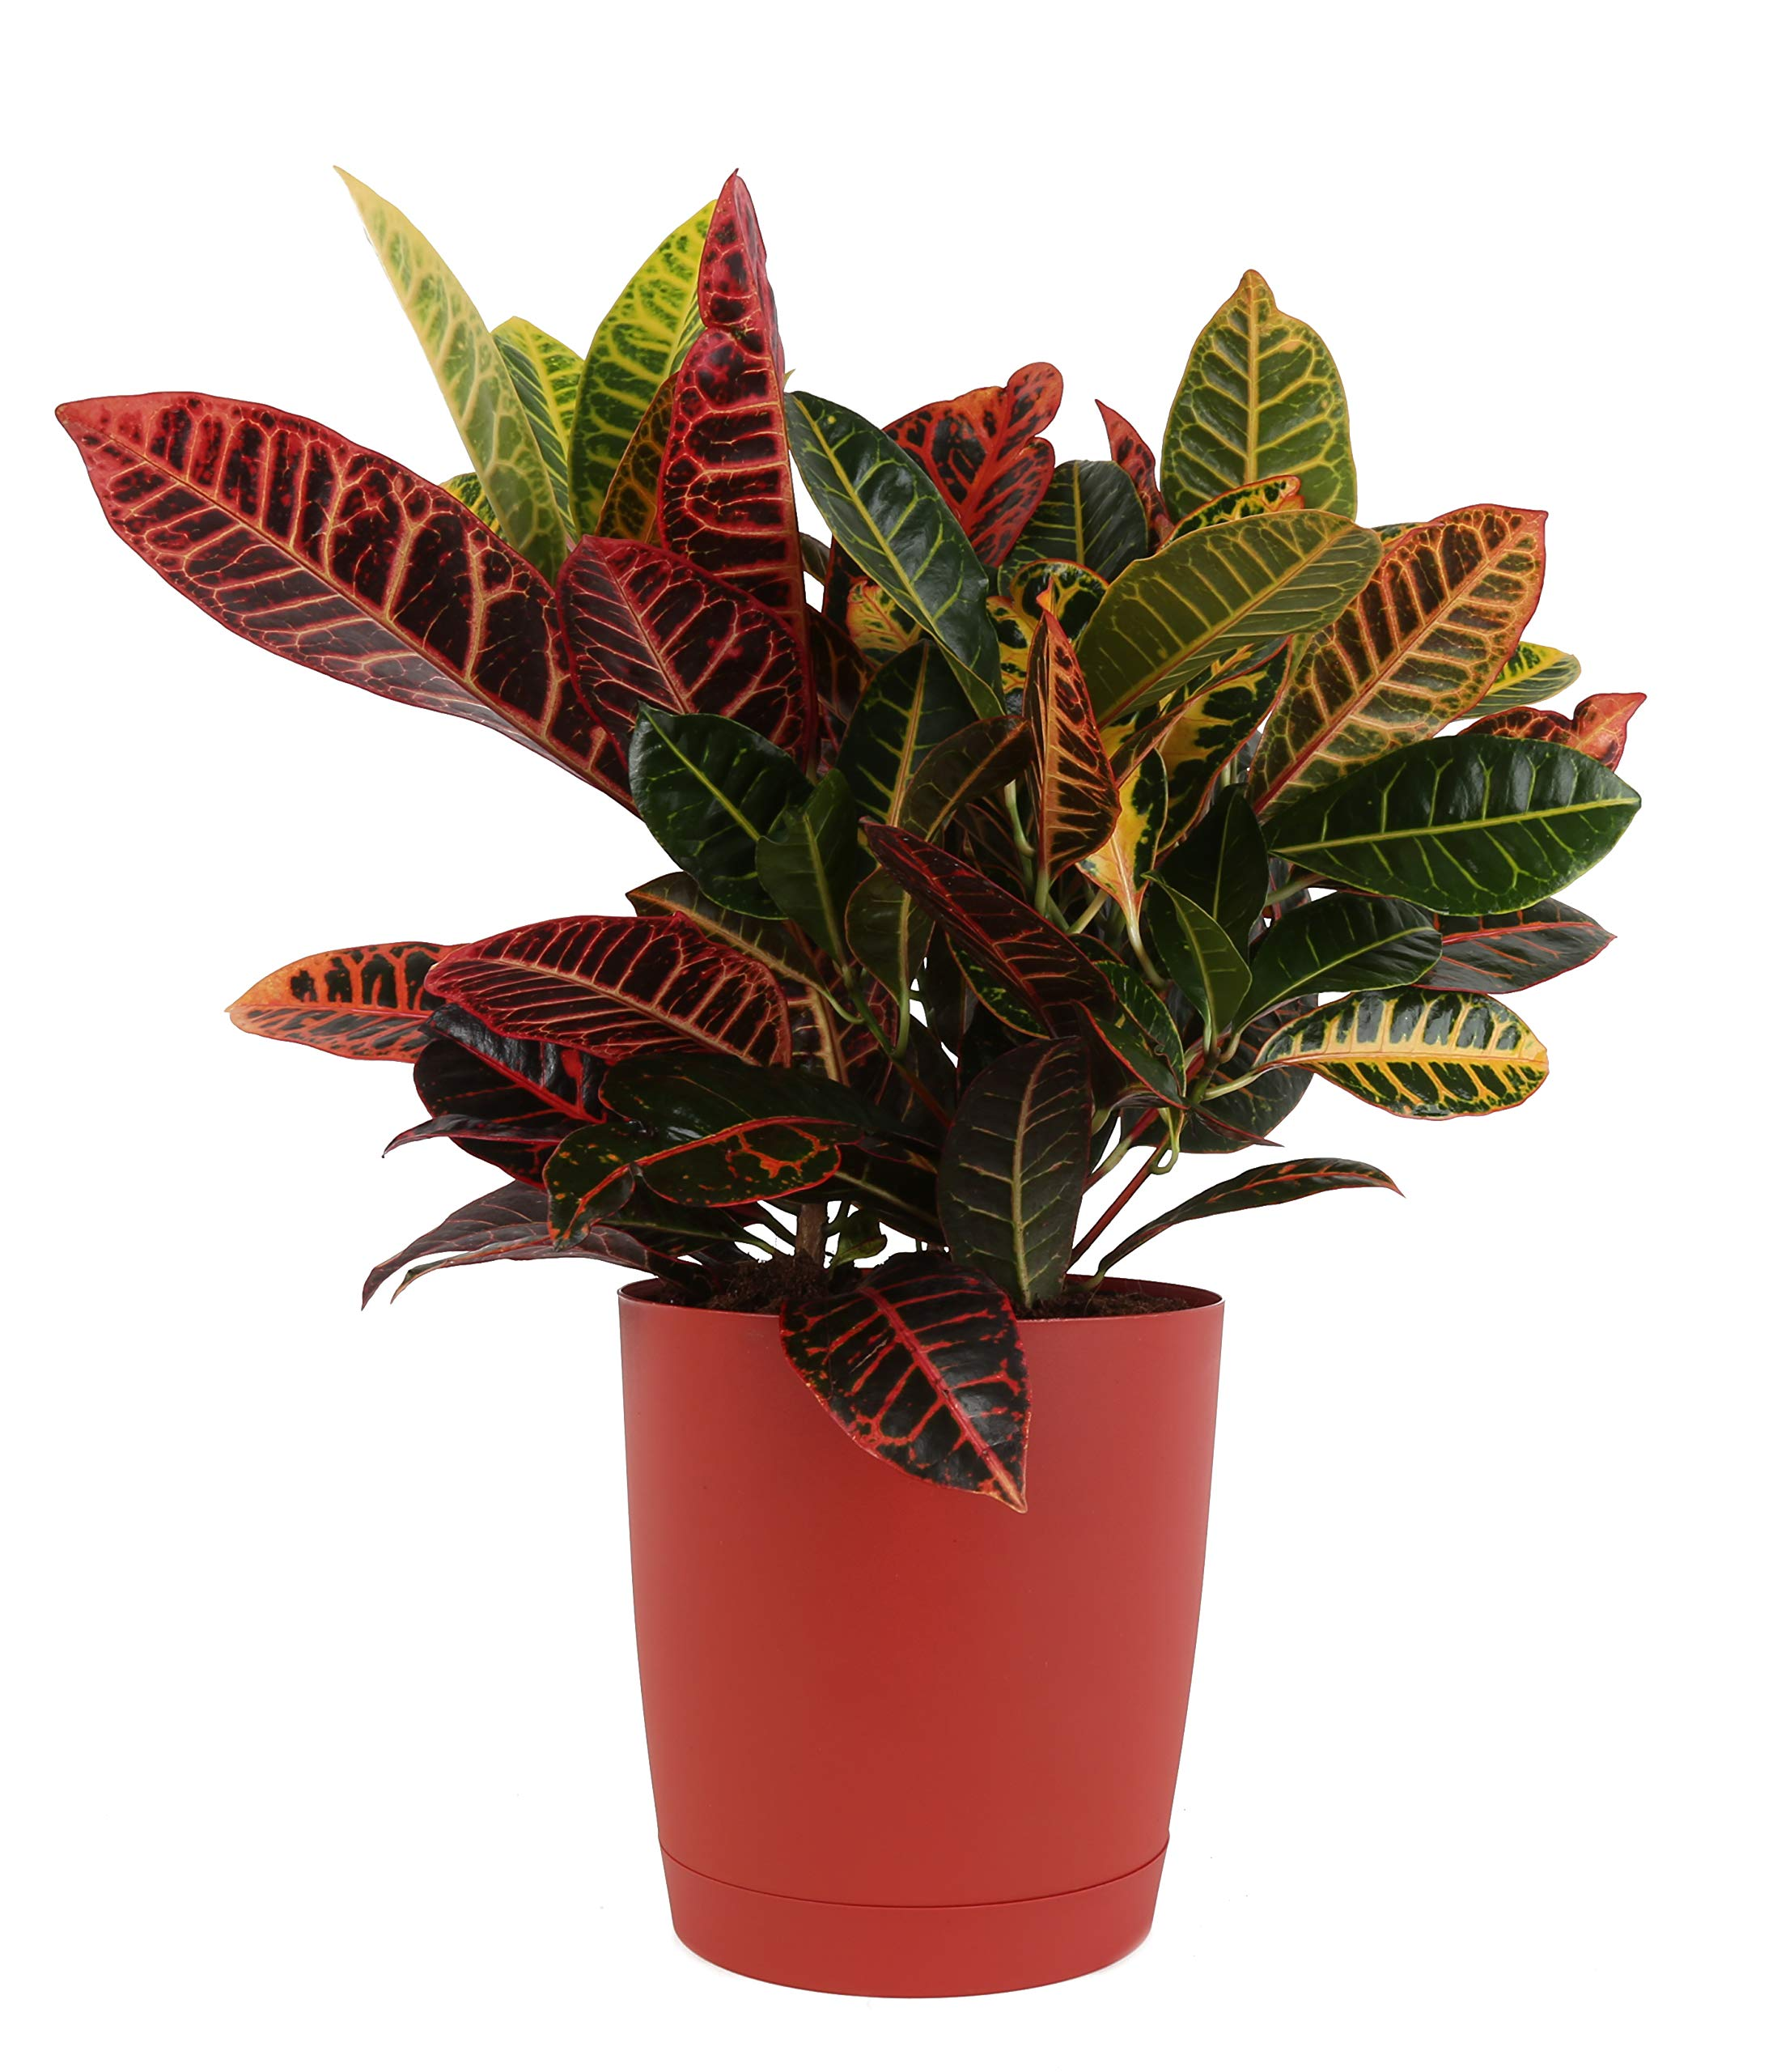 Costa Farms Croton Petra, Live Plant in 10-inch Decorative Container, Perfect for Fall Decorating